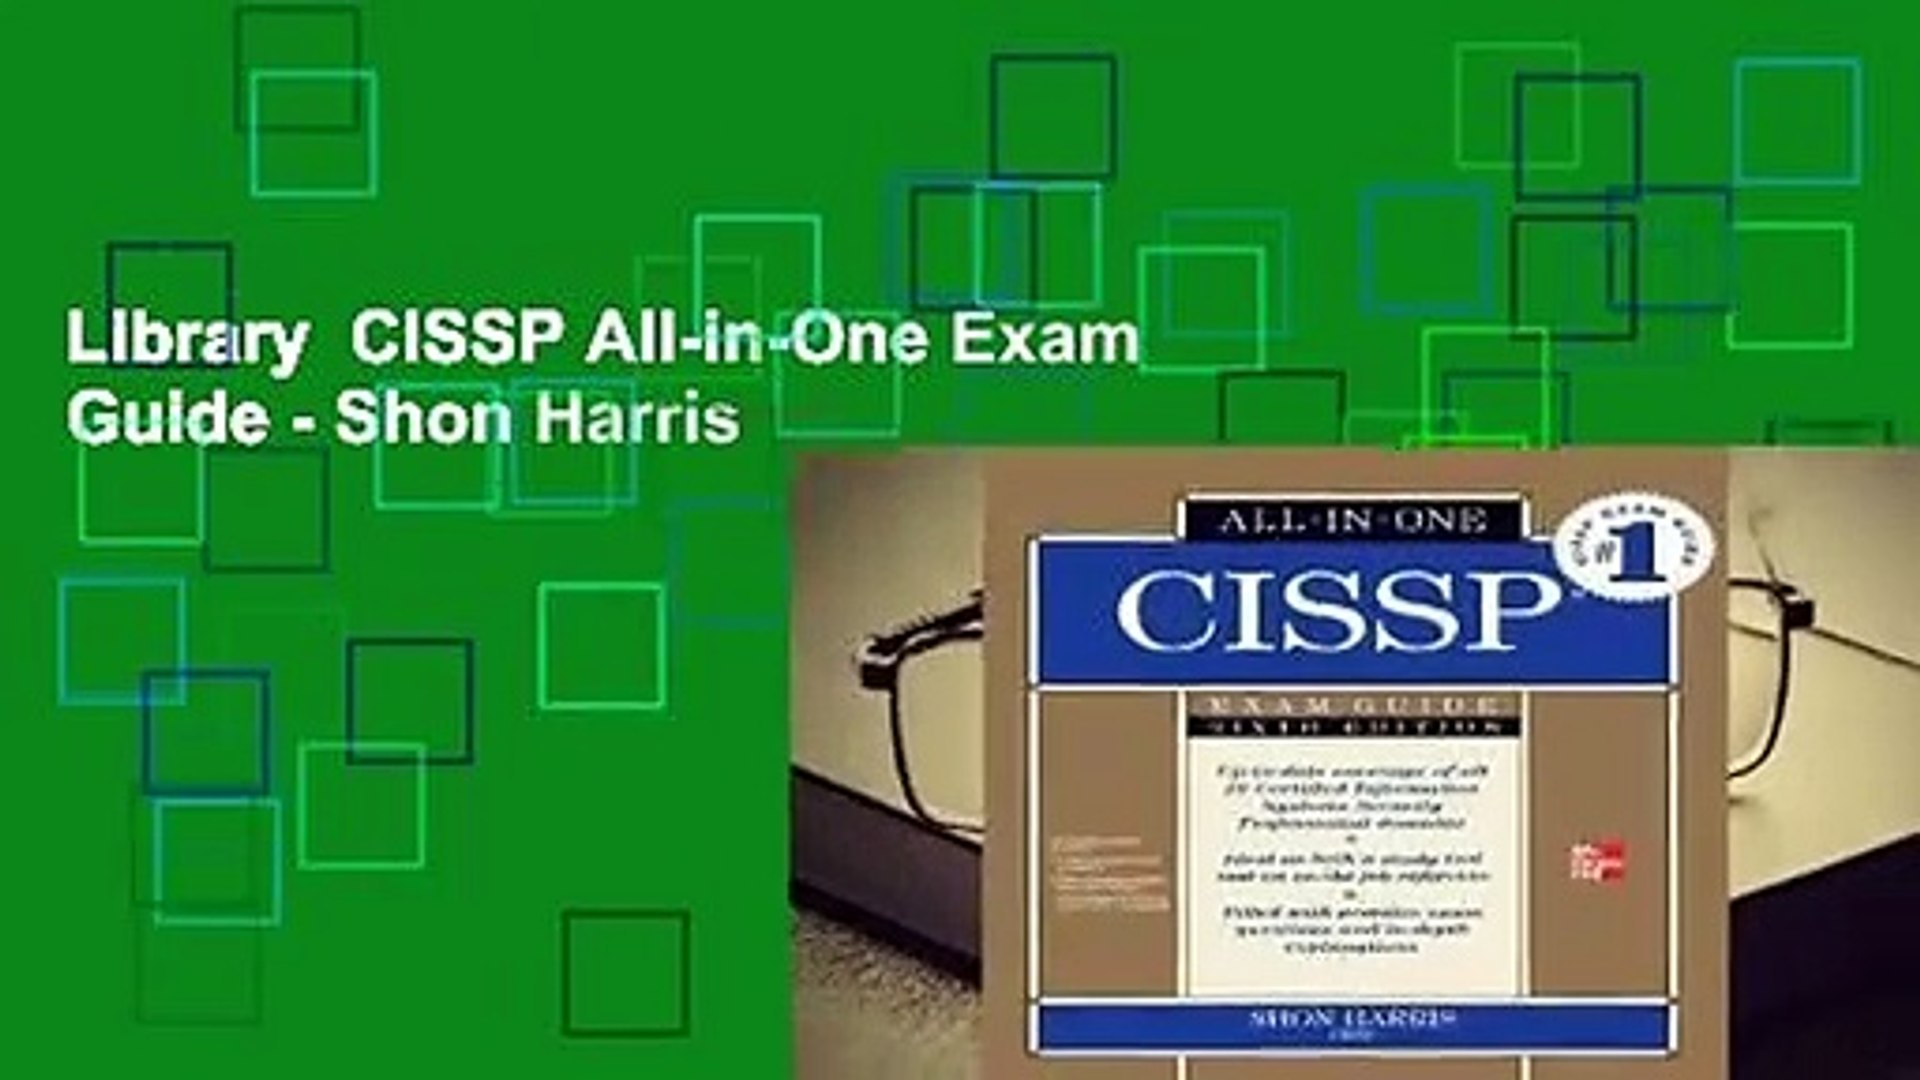 Library CISSP All-in-One Exam Guide - Shon Harris